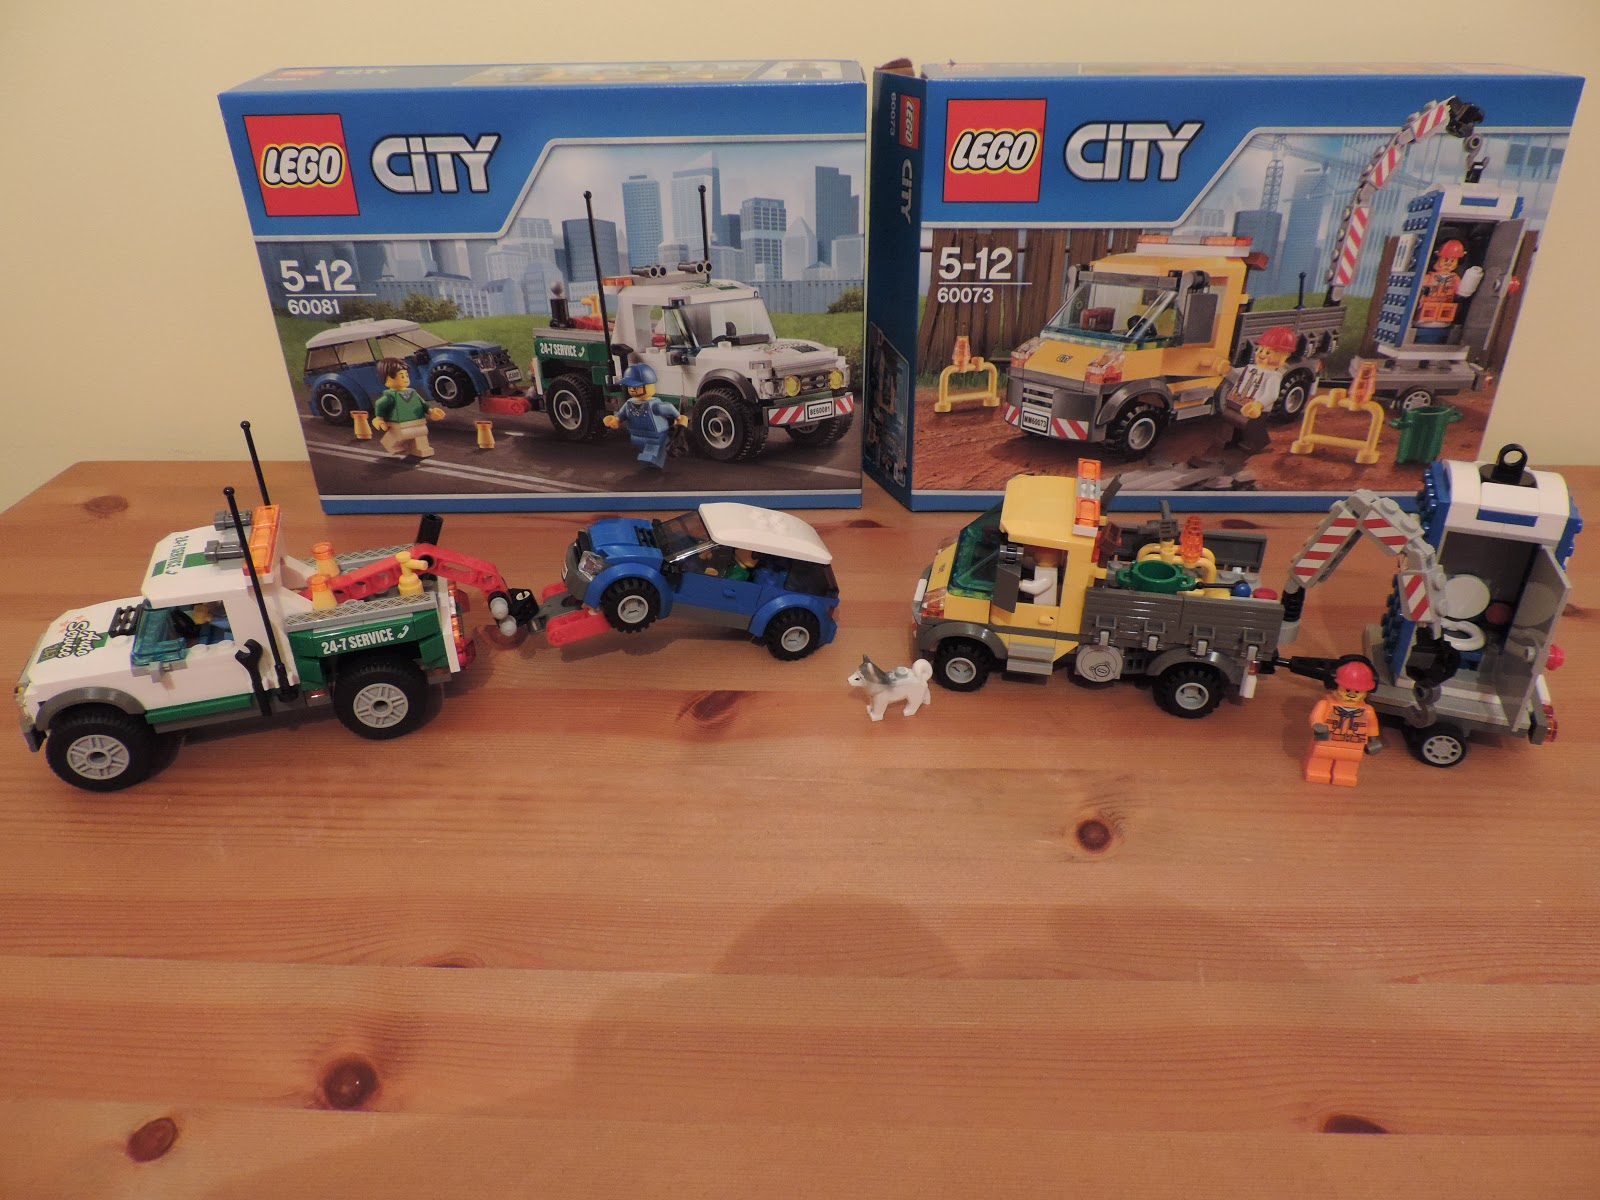 lego city council work truck with portable toilet on trailer 60073